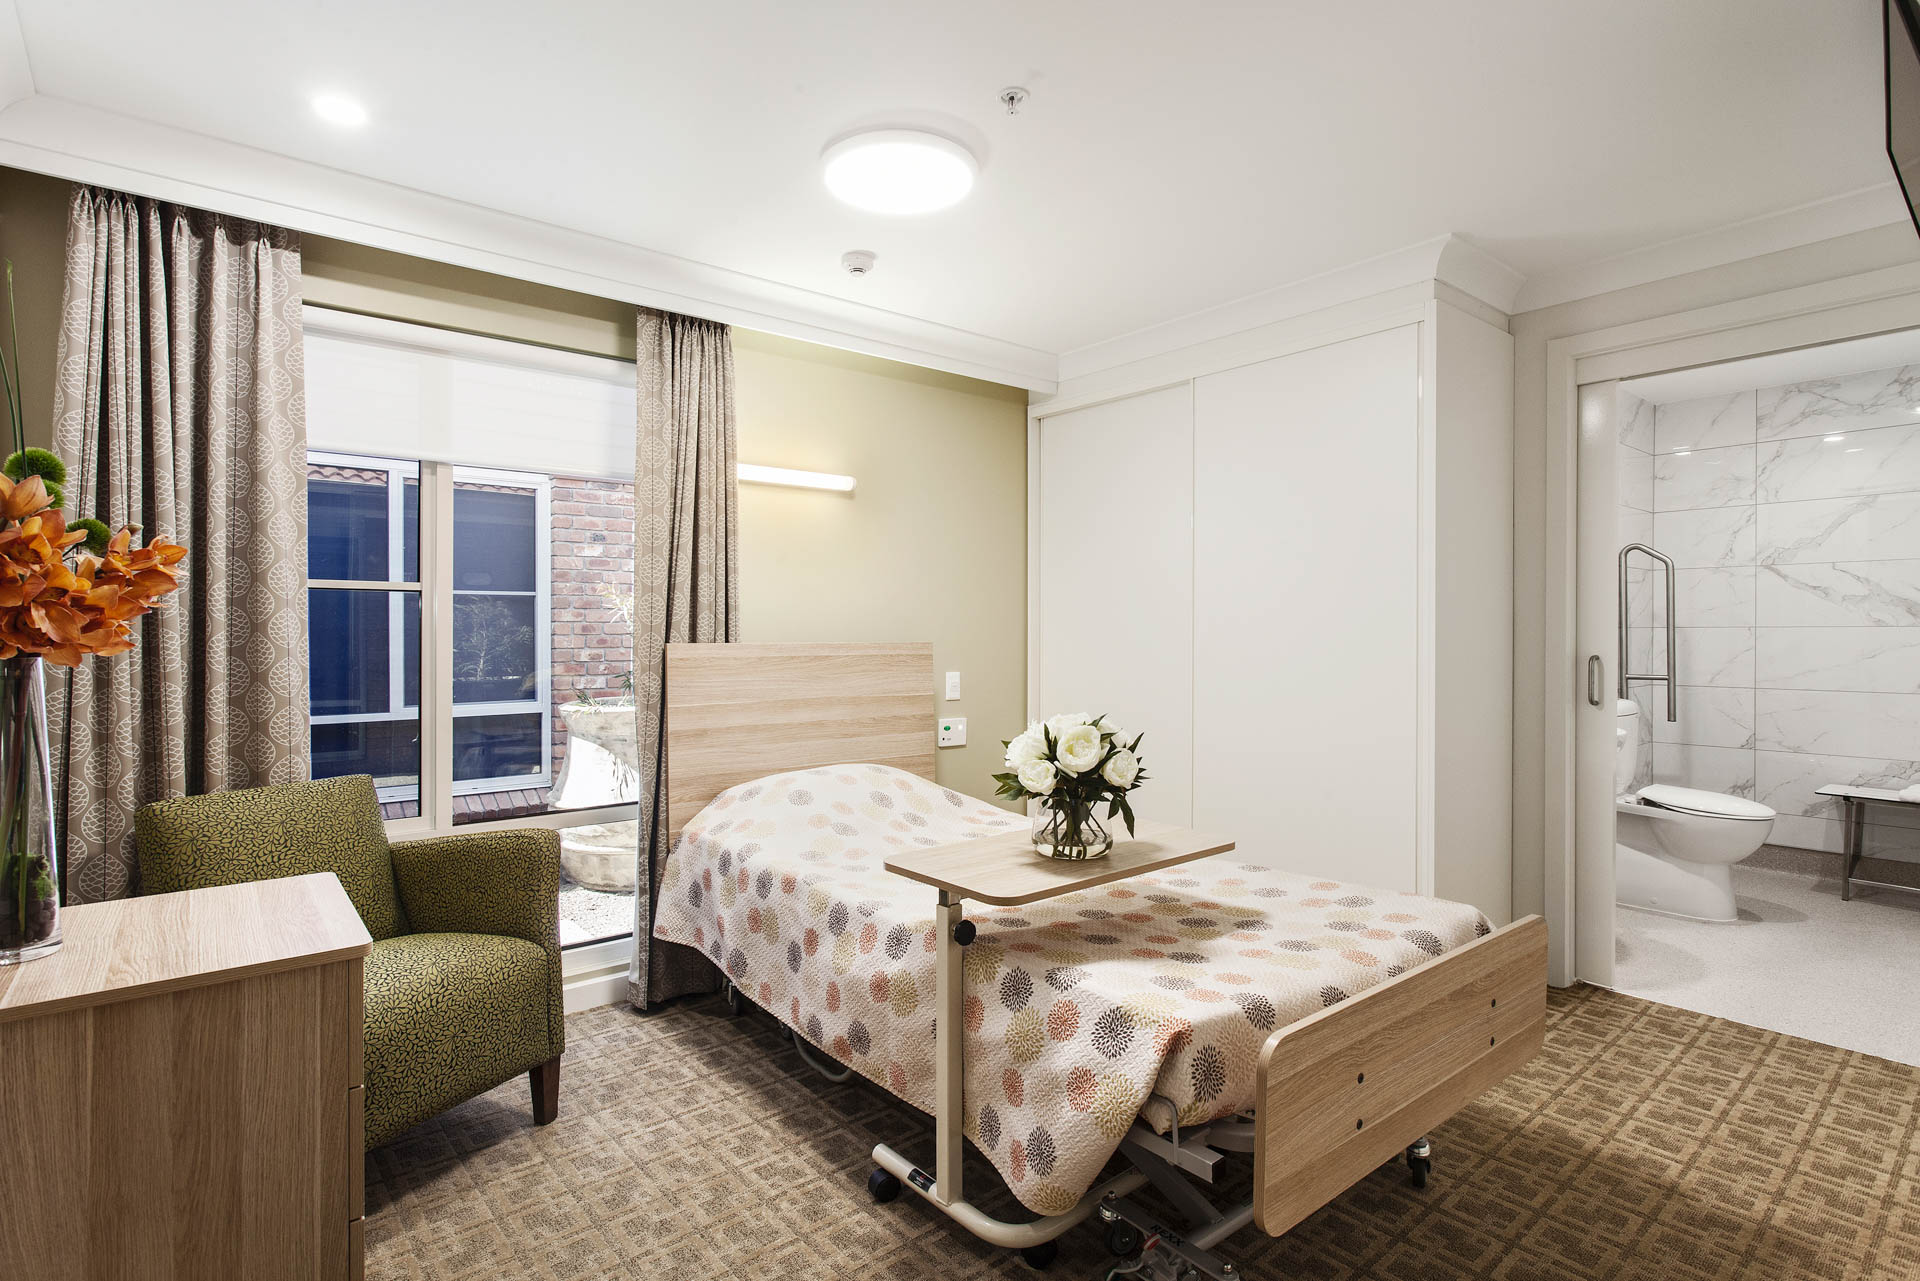 Bedroom at Abberfield Aged Care